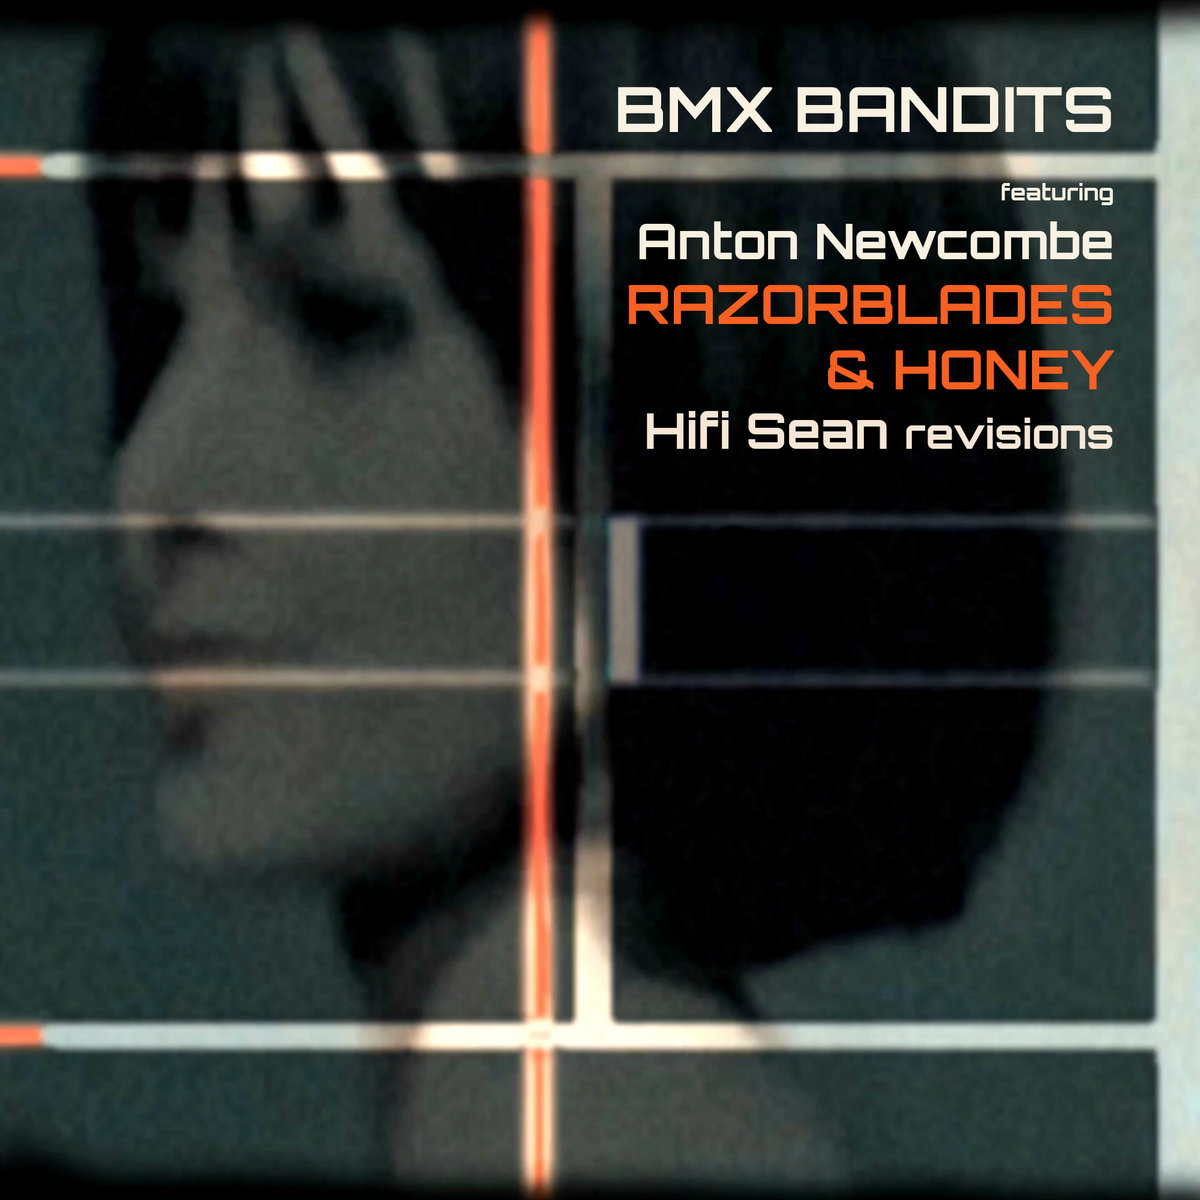 Single of the week – BMX Bandits – Razorblades & Honey ft Anton Newcombe (Hifi Sean Revisions)